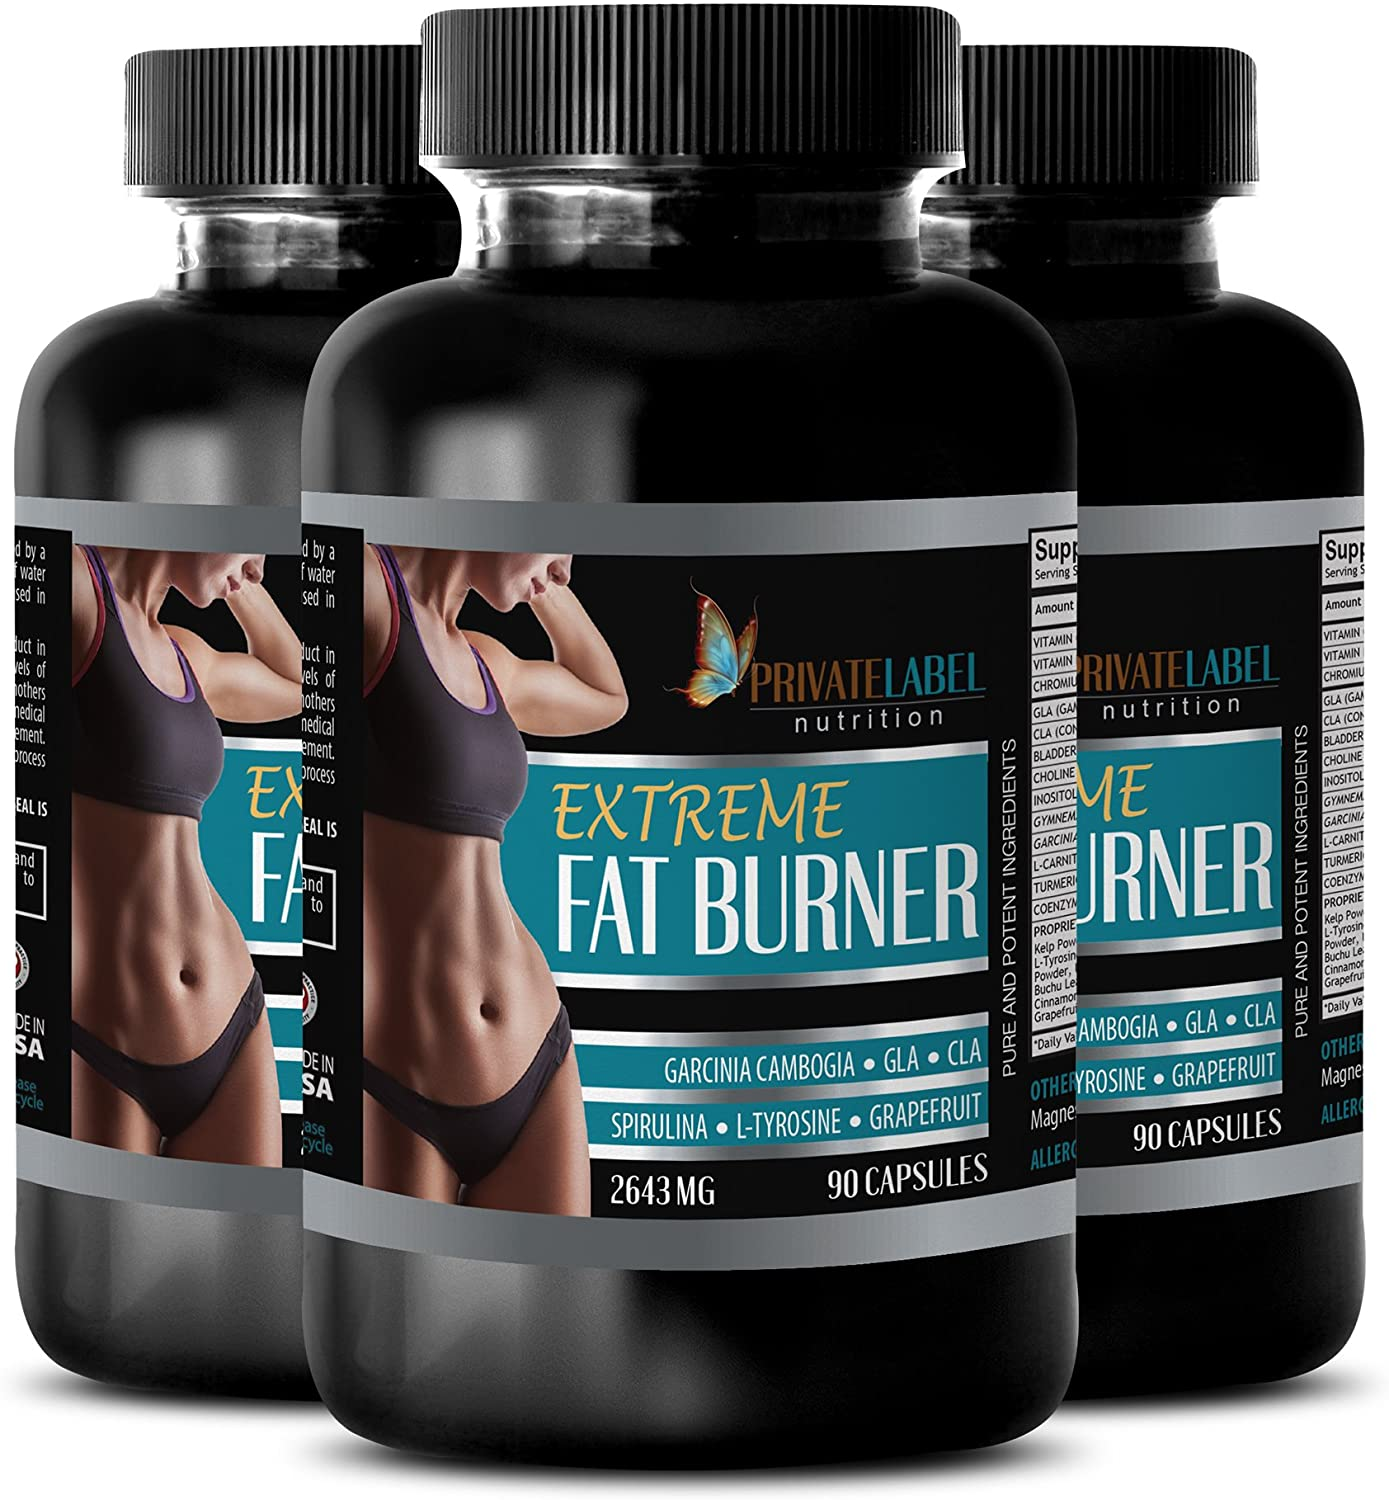 Weight Loss - Extreme Fat Burner 2643 mg - Gla Supplement - 3 Bottle (270 Capsules)